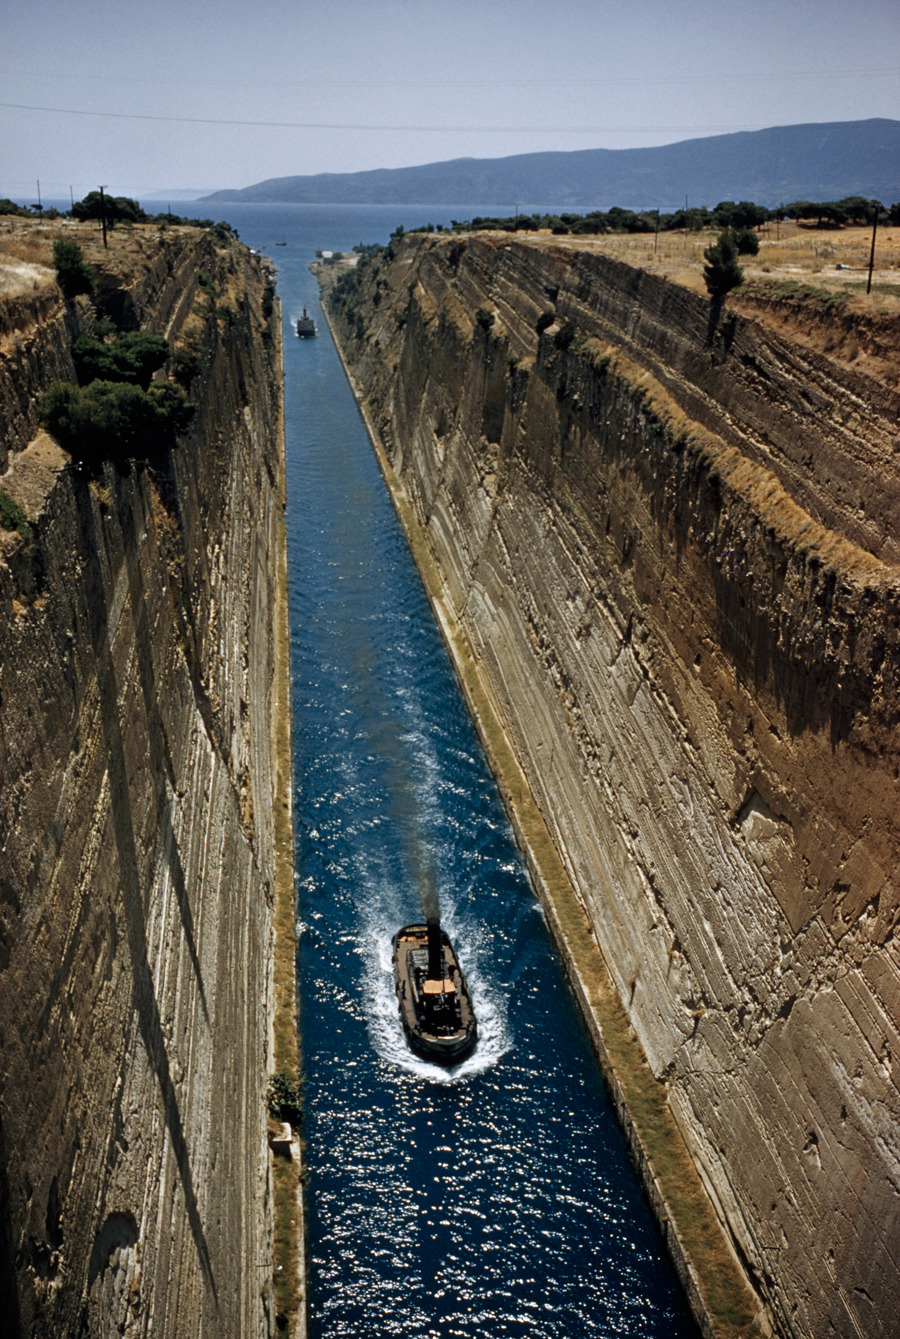 Boats ferry through a canal to bypass the Peloponnesus in Corinth, Greece, December 1956.Photograph by David Boyer, National Geographic